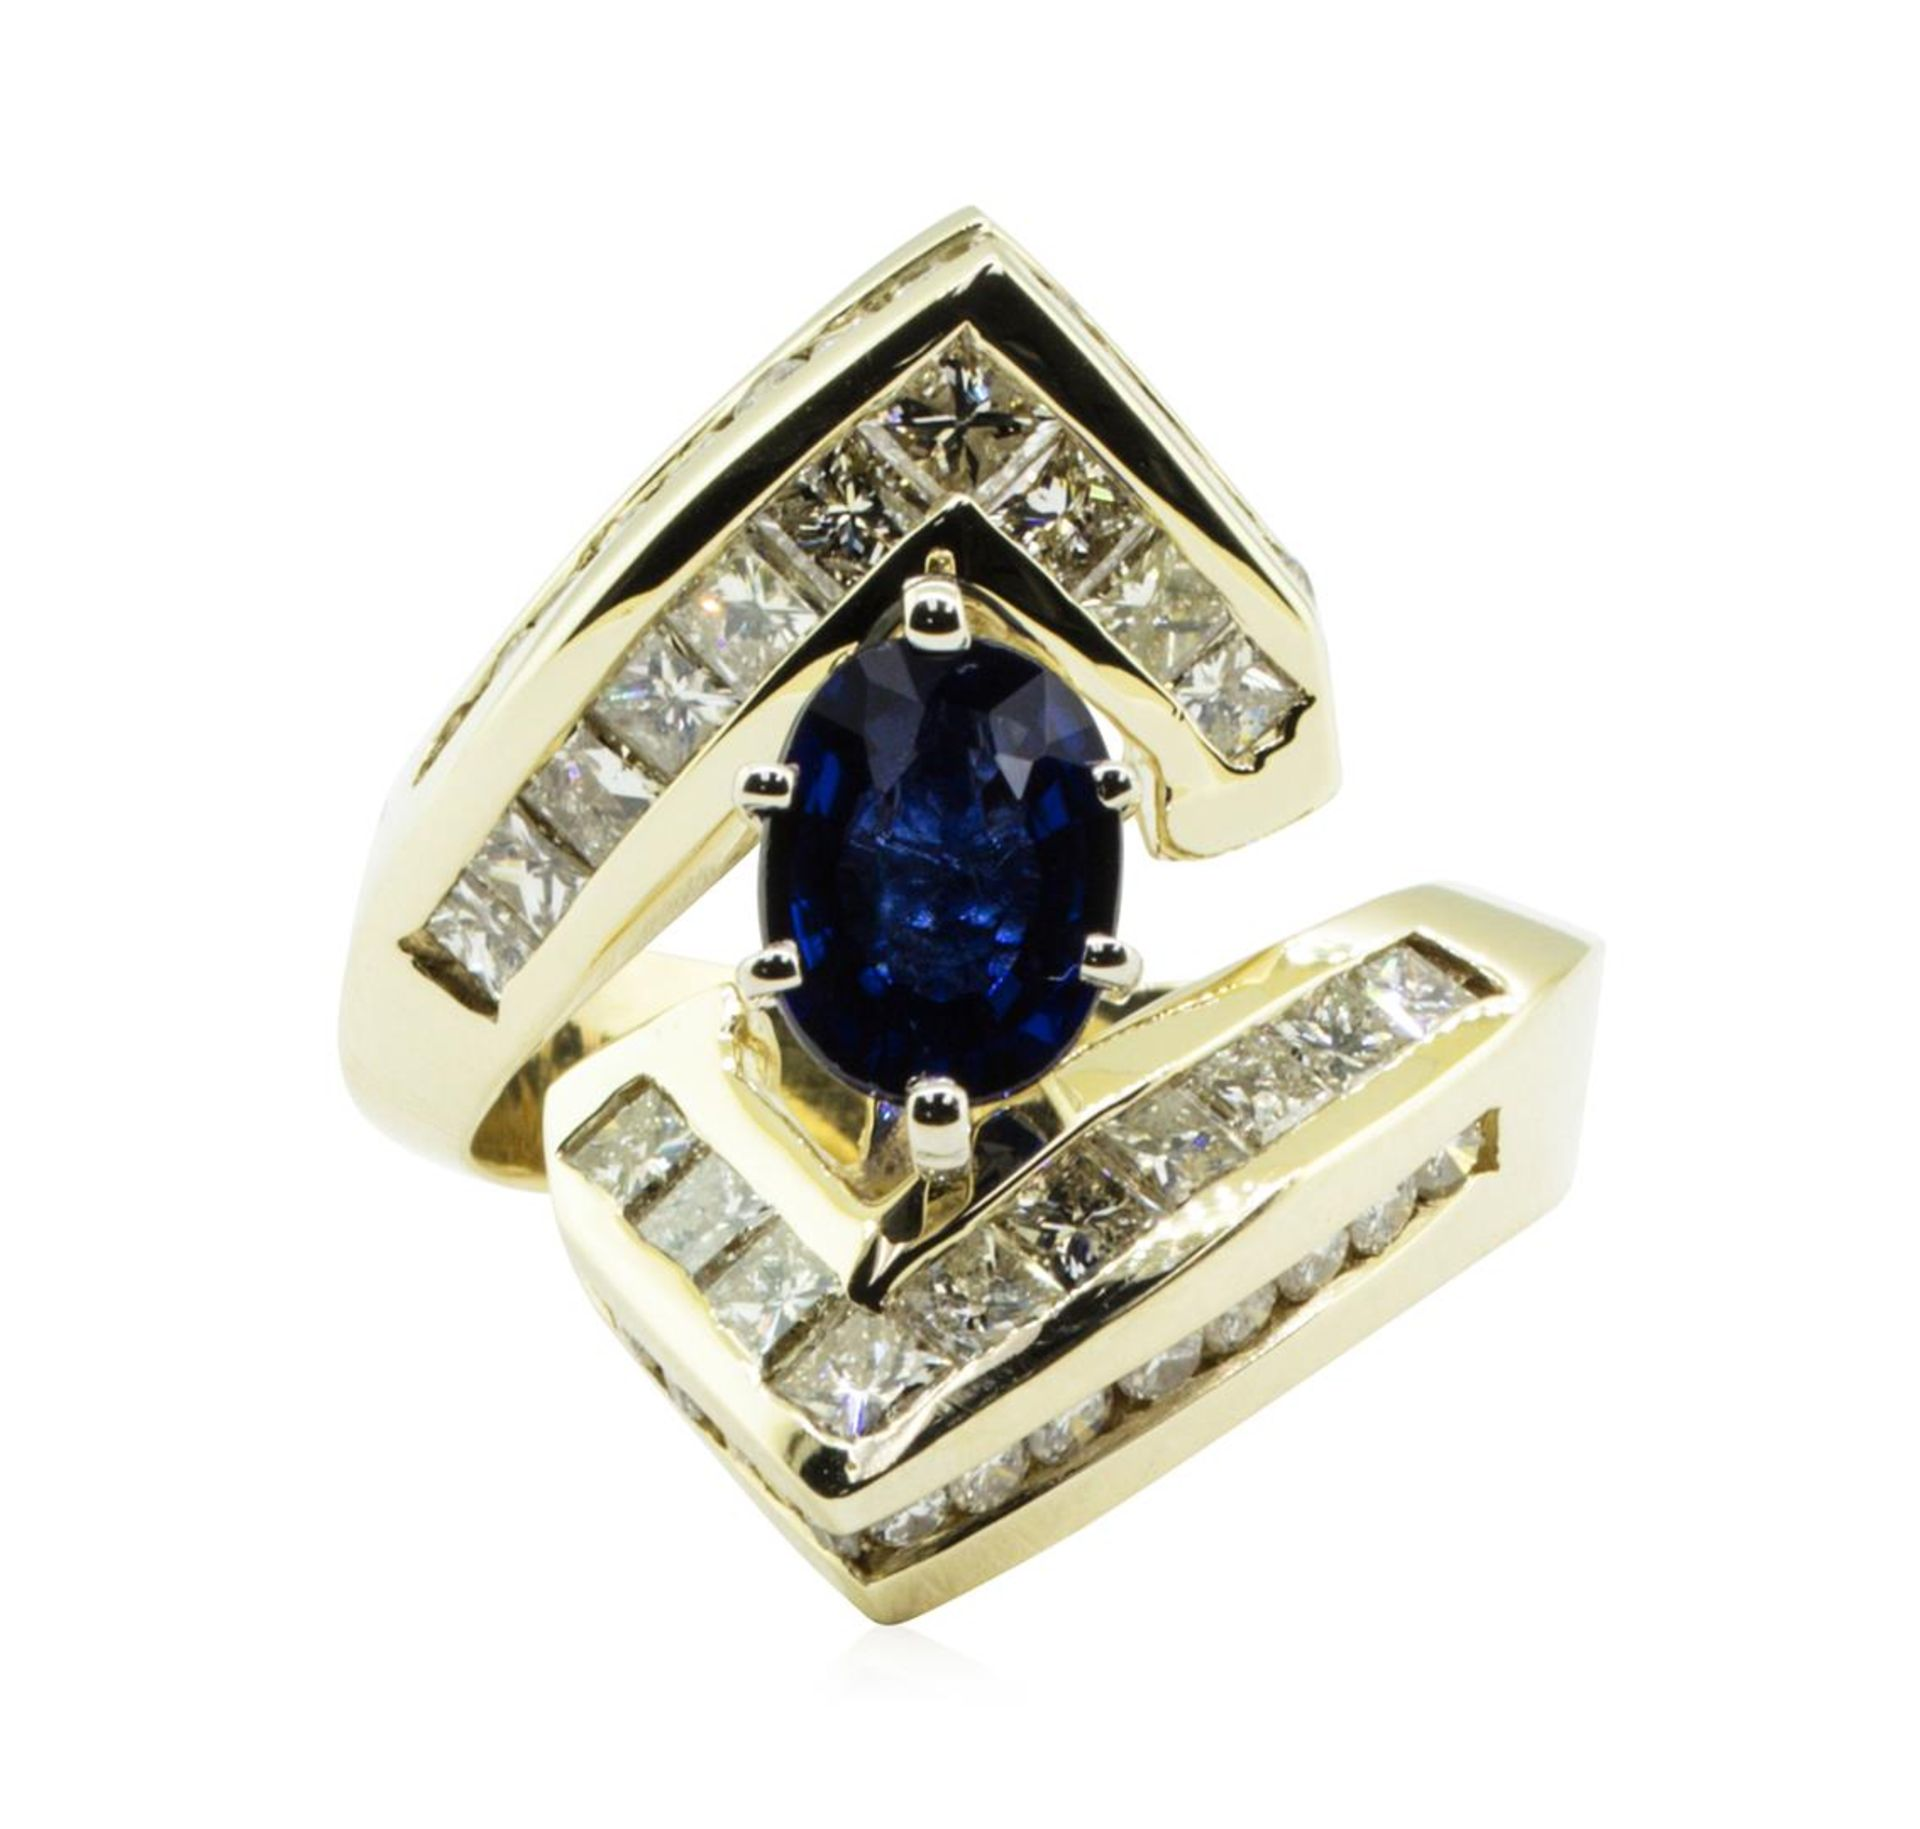 3.16 ctw Oval Brilliant Blue Sapphire And Diamond Ring - 14KT Yellow Gold - Image 2 of 5